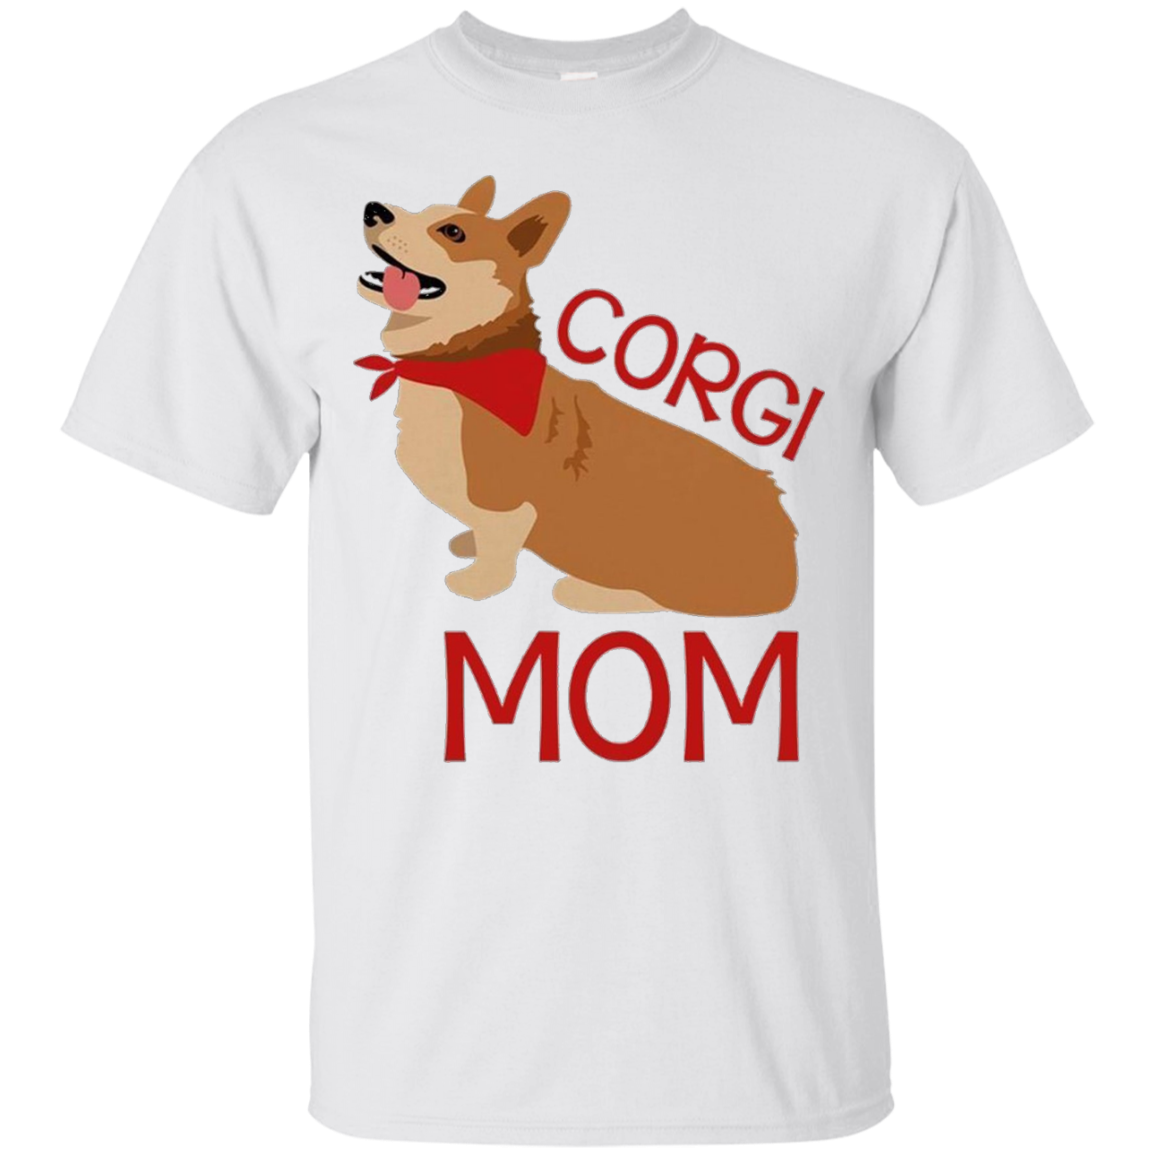 Corgi Mom - T-Shirt